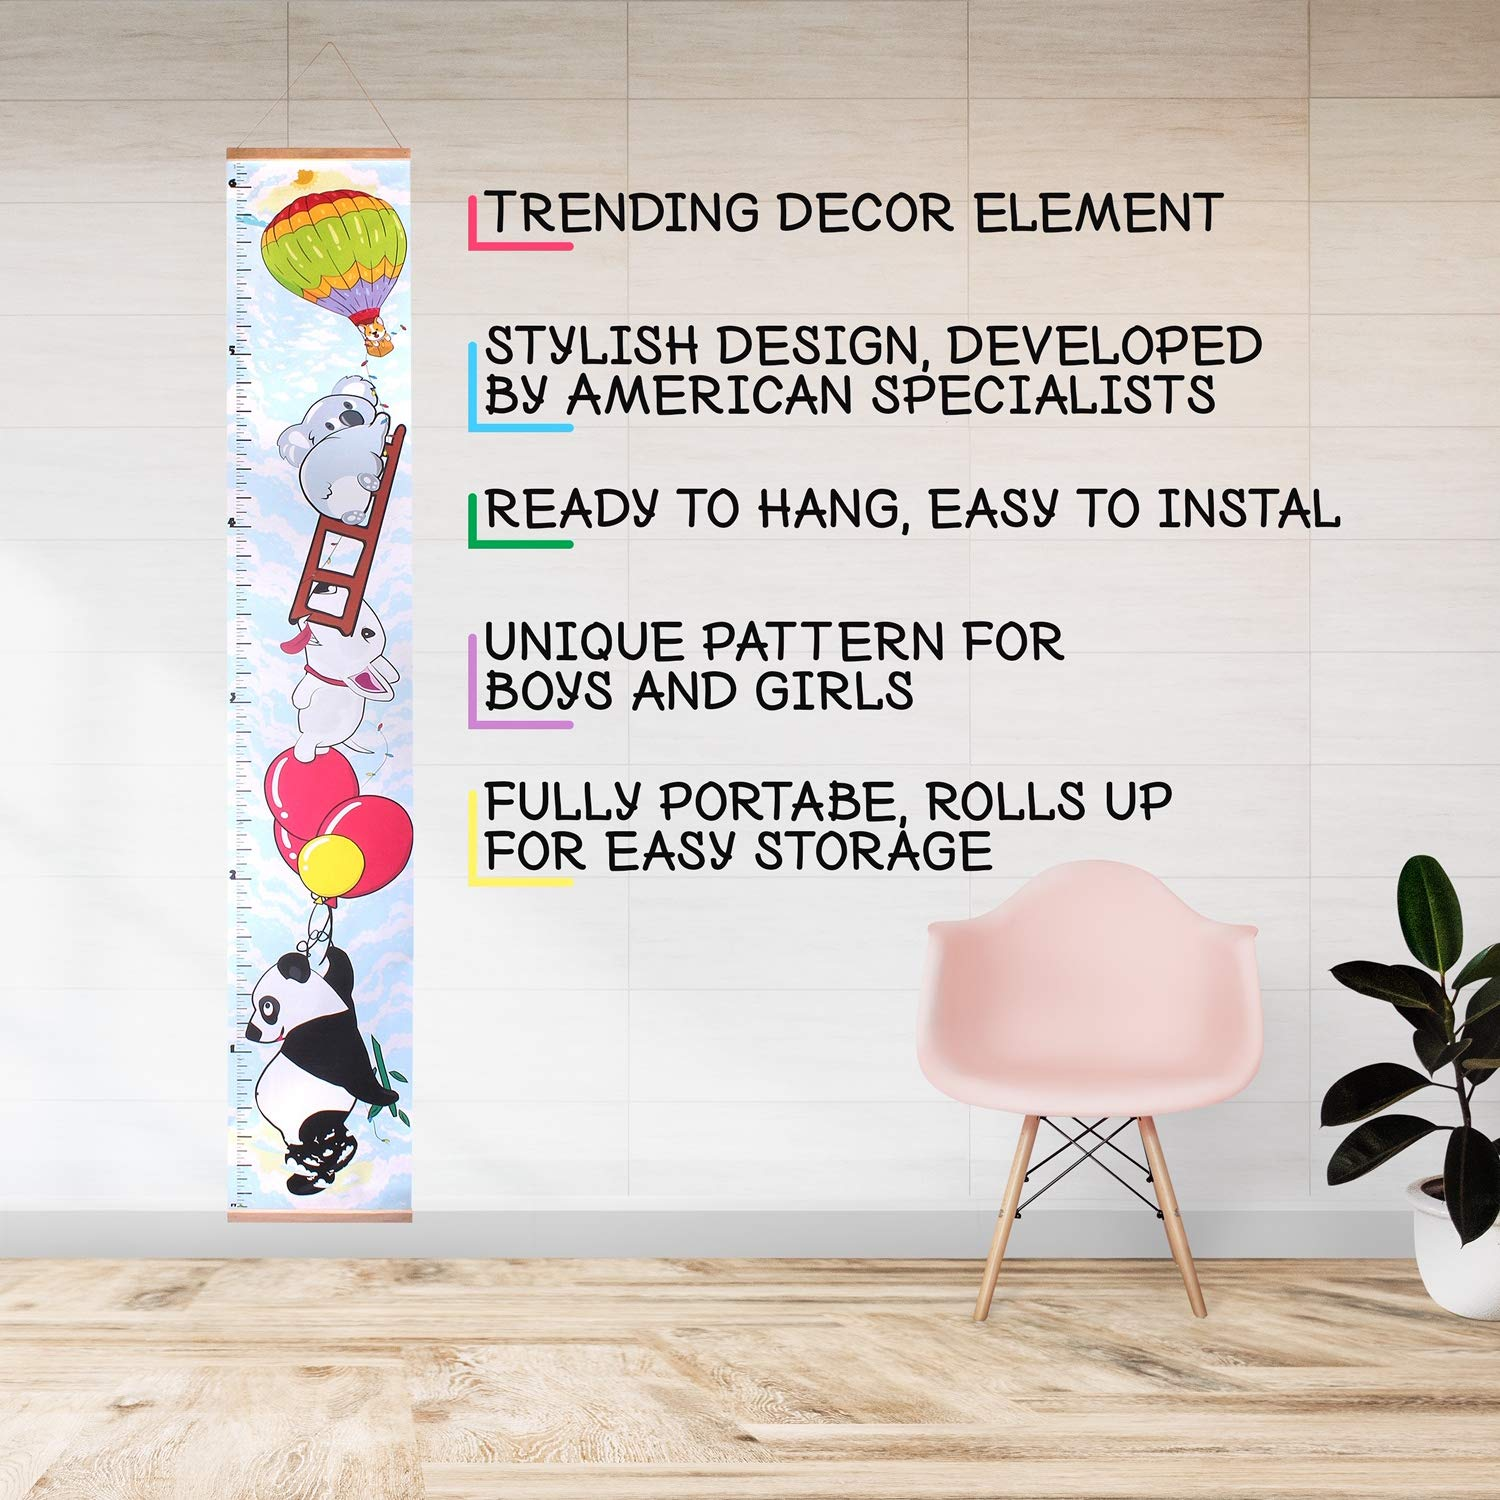 Height Growth Chart for Kids, Portable and Foldable Hanging Wall Ruler Chart, Appealing Universal Kids Room Decor for Boys and Girls, Birthday and Baby Shower Gift